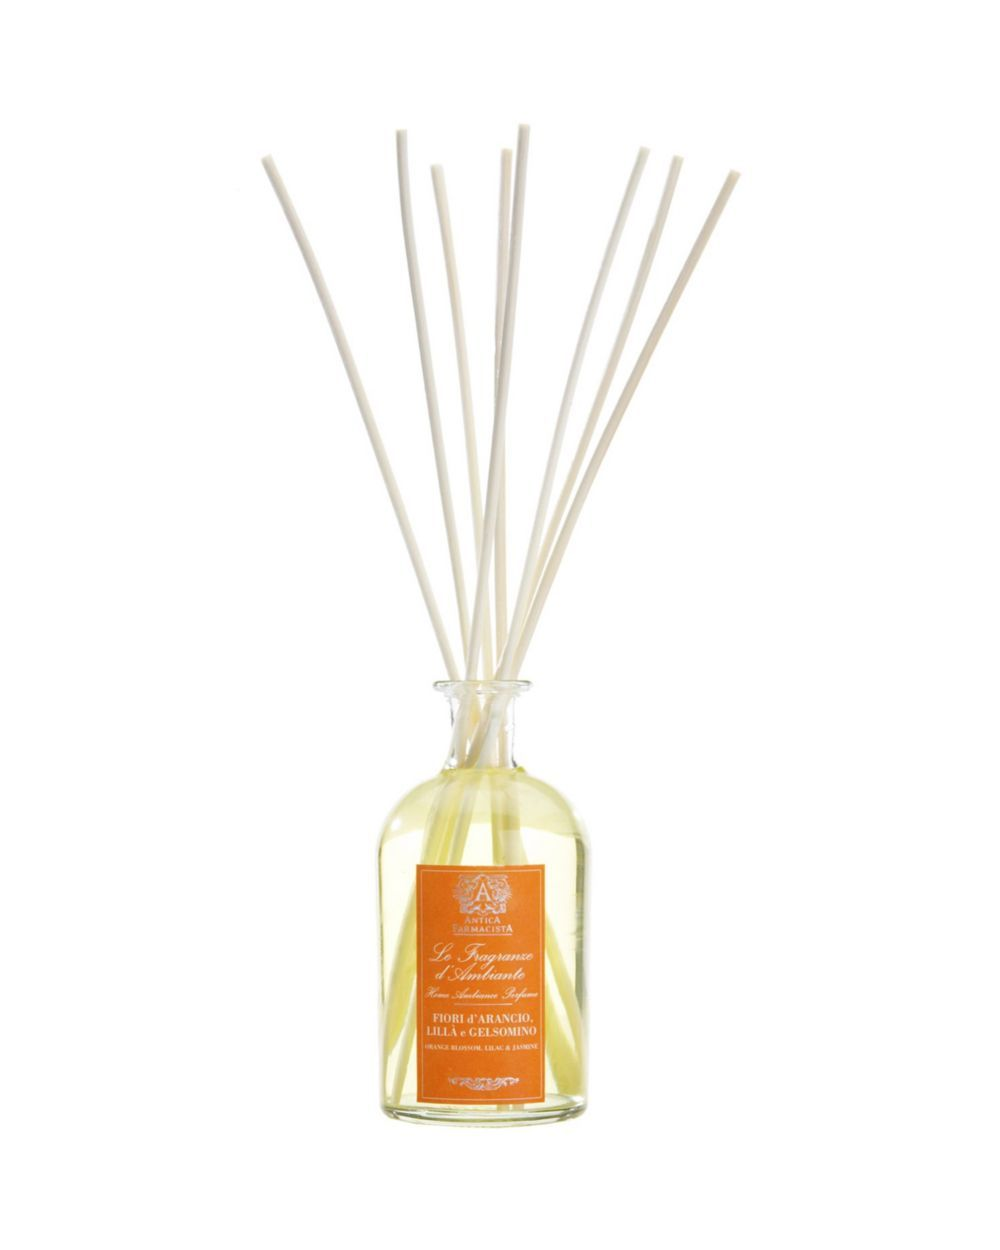 Home Ambiance Diffuser